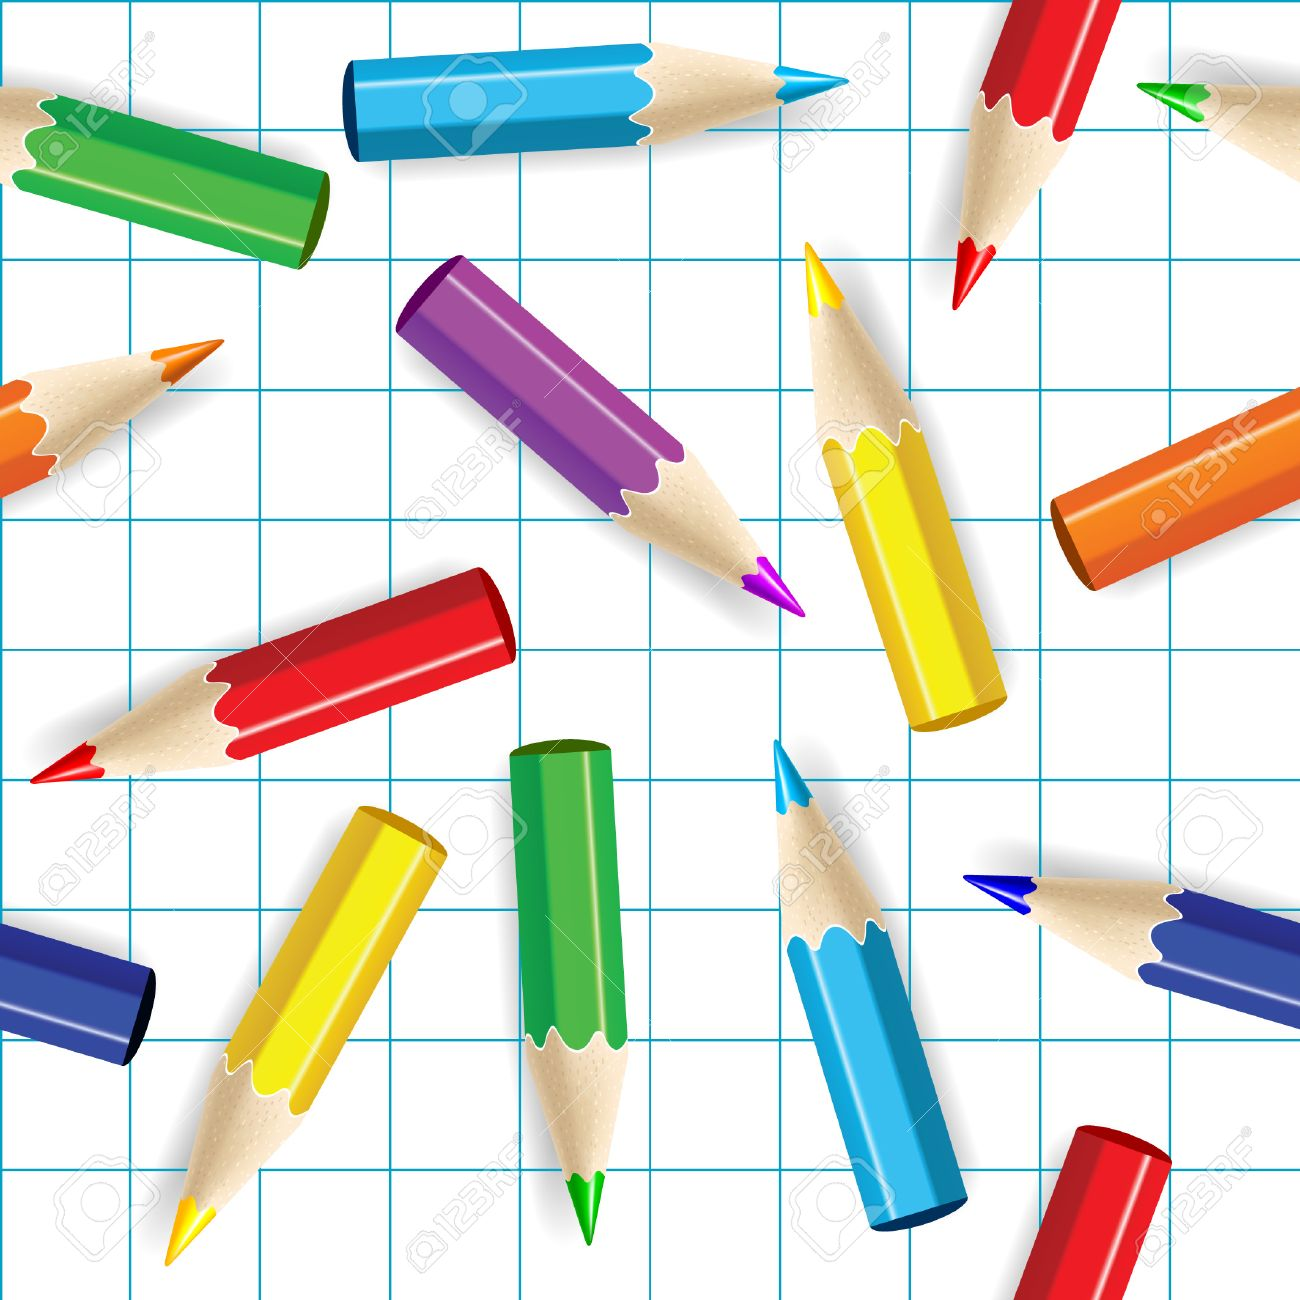 Color pencils seamless background. Stock Vector - 4862647